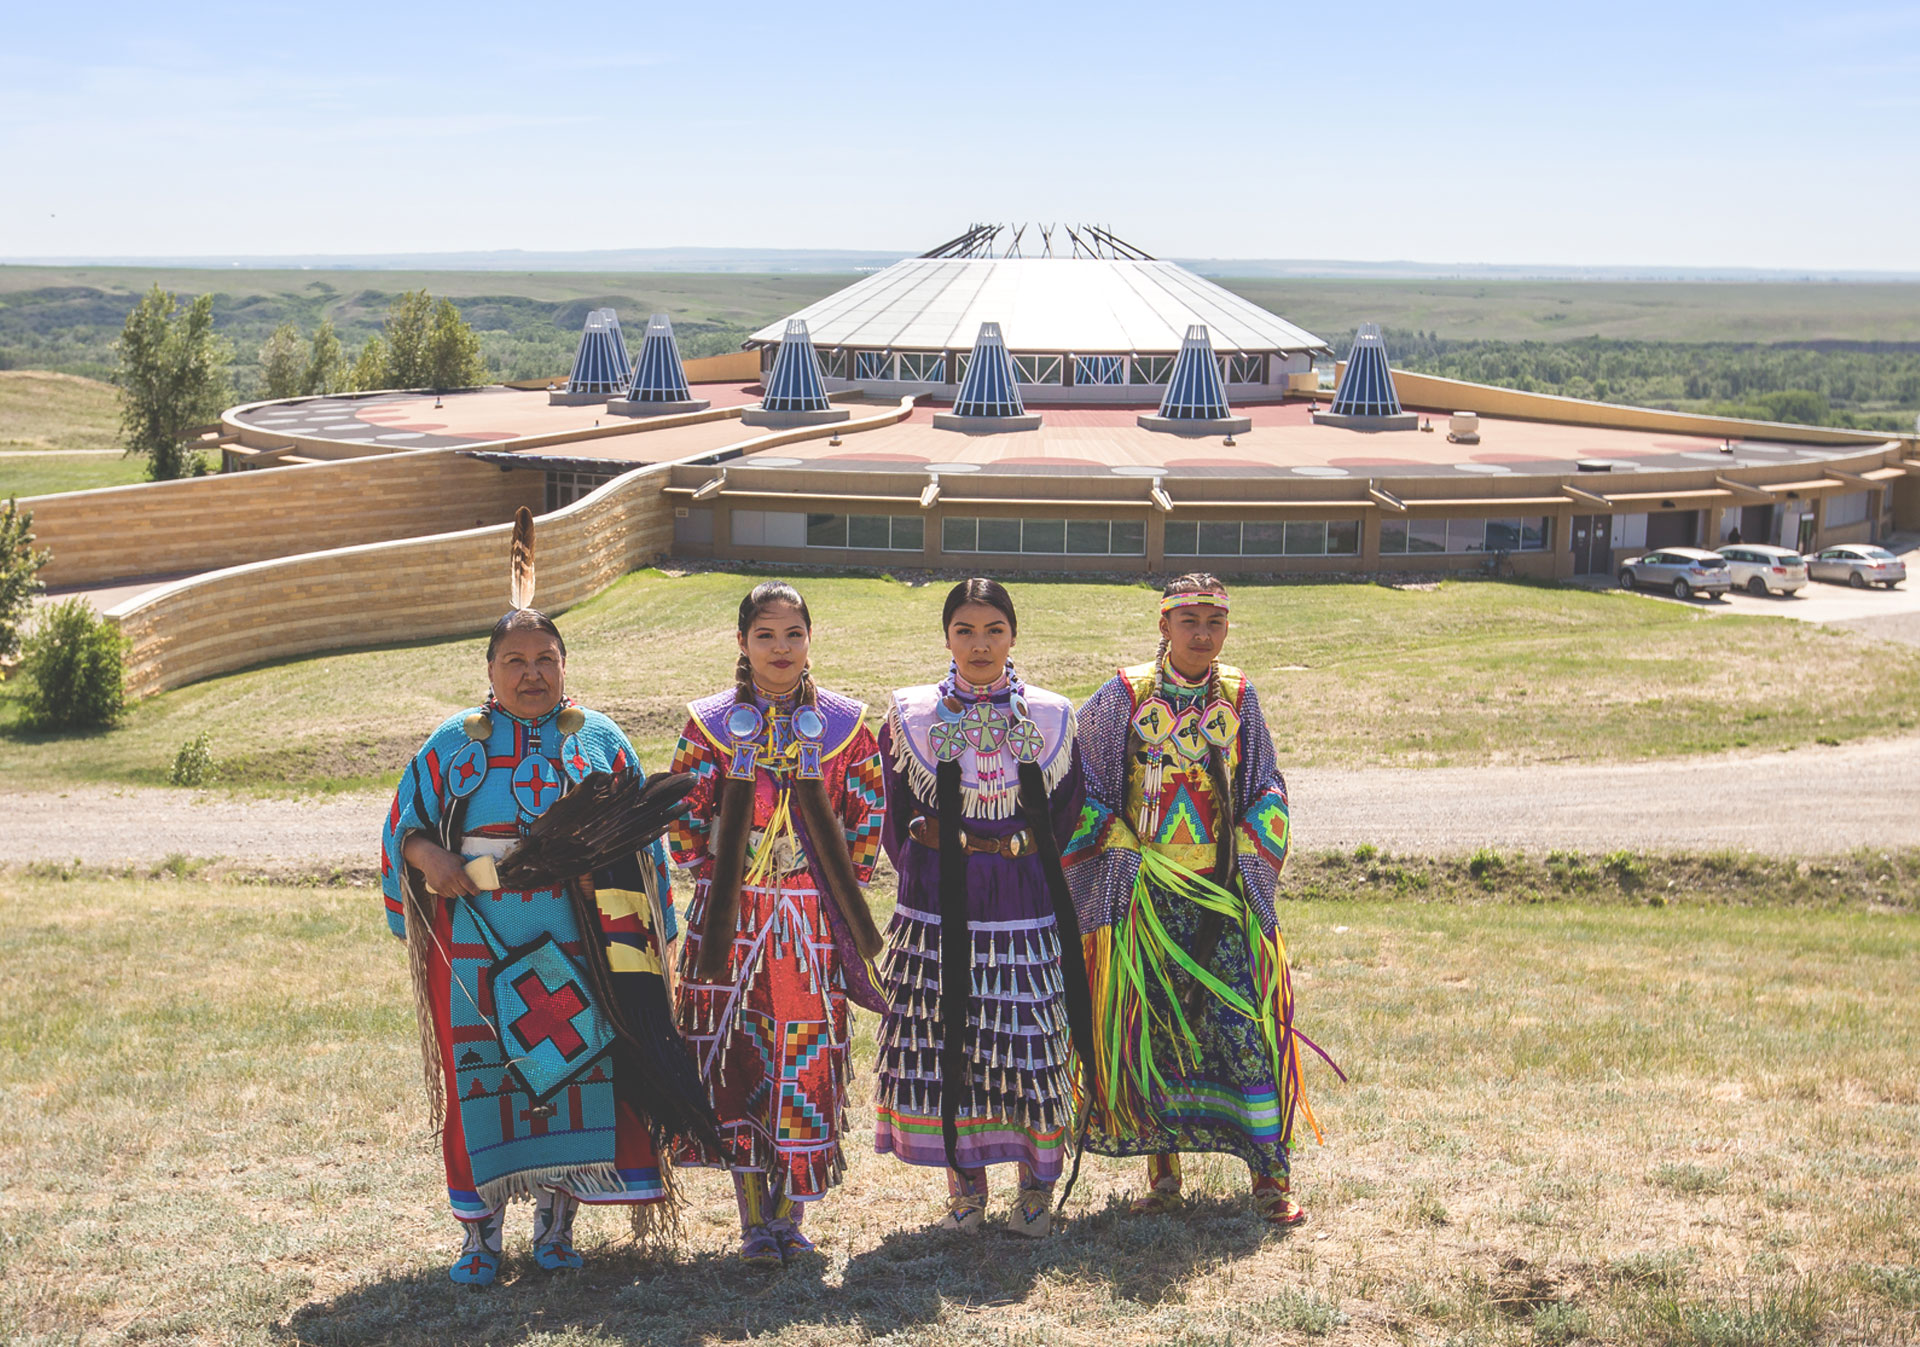 Blackfoot Crossing is the historic site of the signing of Treaty No. 7 (Photo credit: Travel Alberta/Katie Goldie).